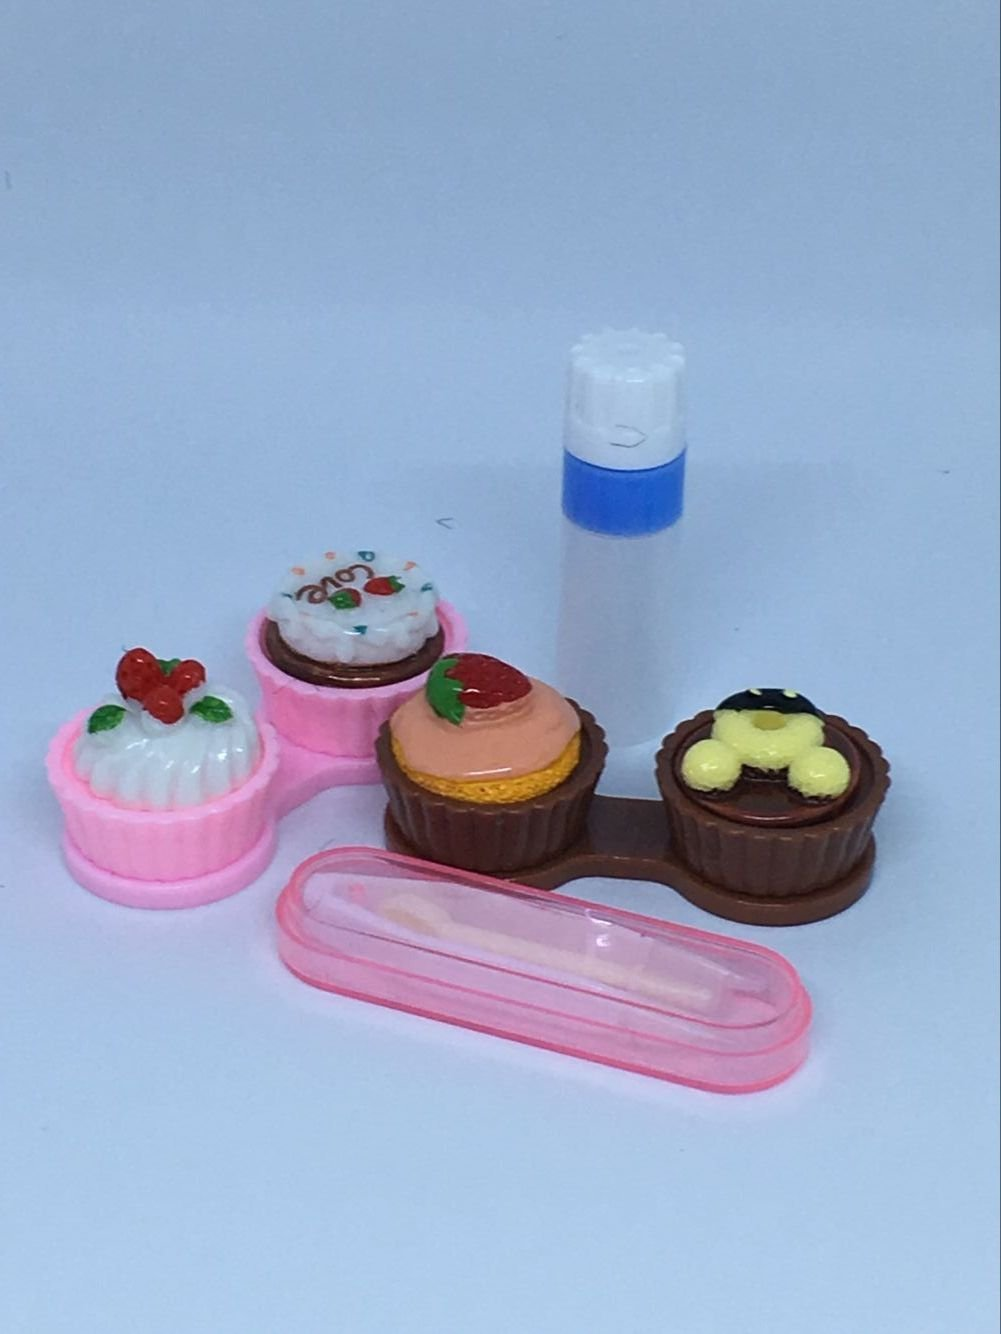 TGBACK Cute Kate Design Contact Lens Case Travel Kit Mirror +bottle + tweezers Container Holder by Tgback (Image #4)